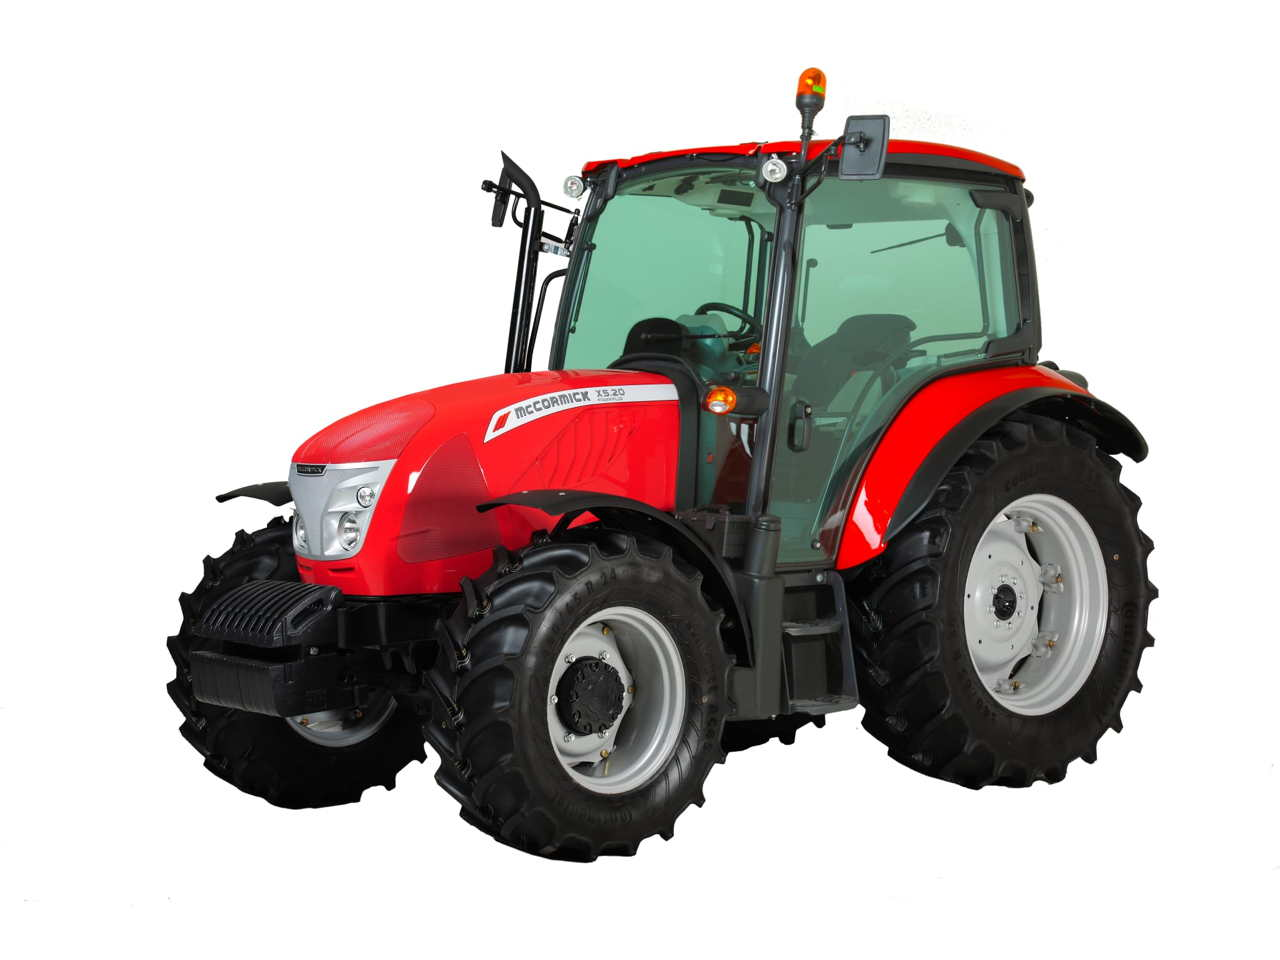 Image result for mccormick x7 460 p6 drive tractor